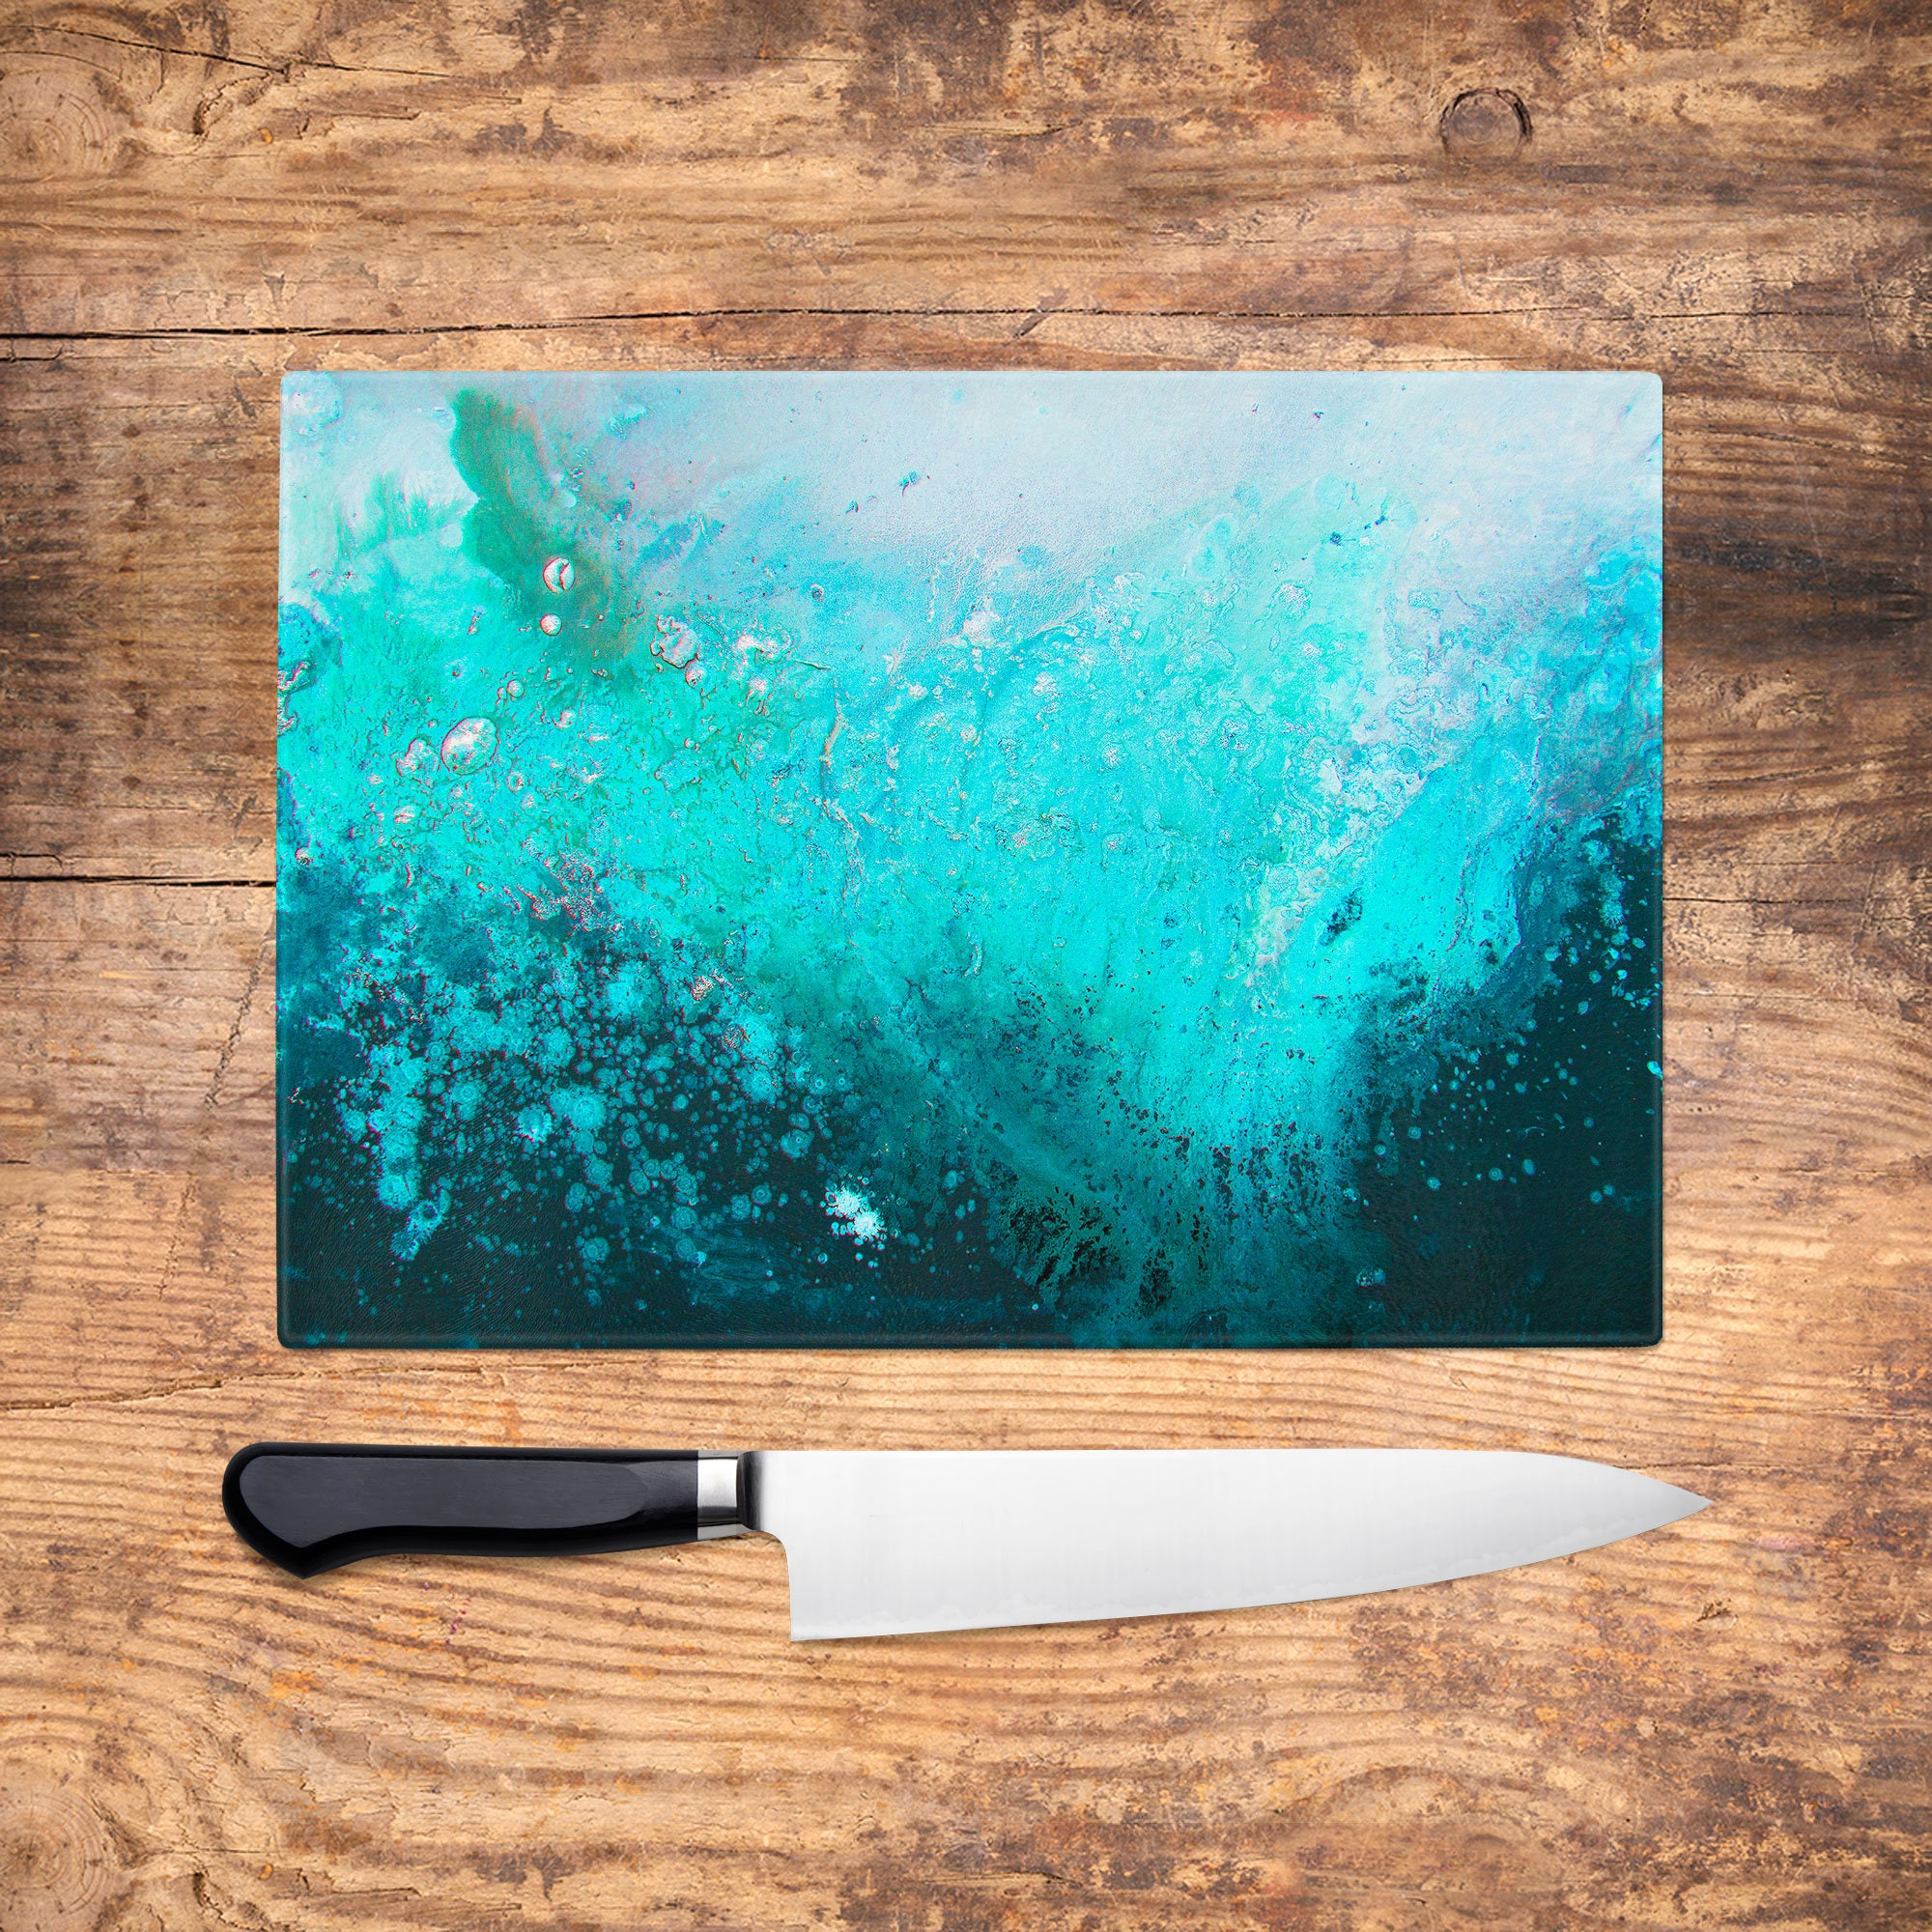 Teal Glass Chopping Board Teal Turquoise & Black Abstract | Etsy